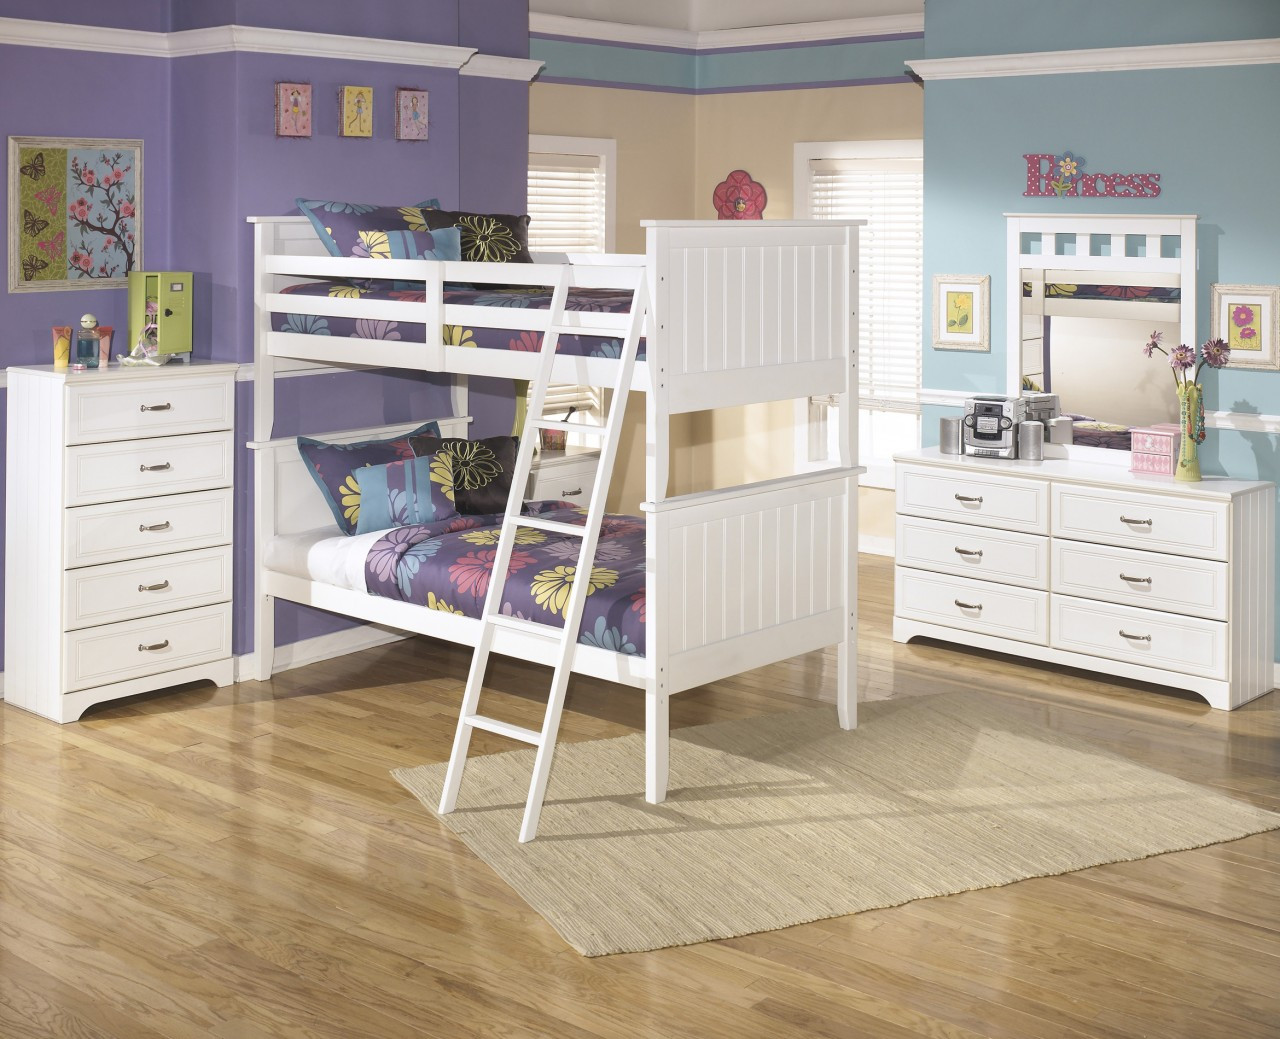 Elli White Bunk Bed Bedroom Set Cb Furniture